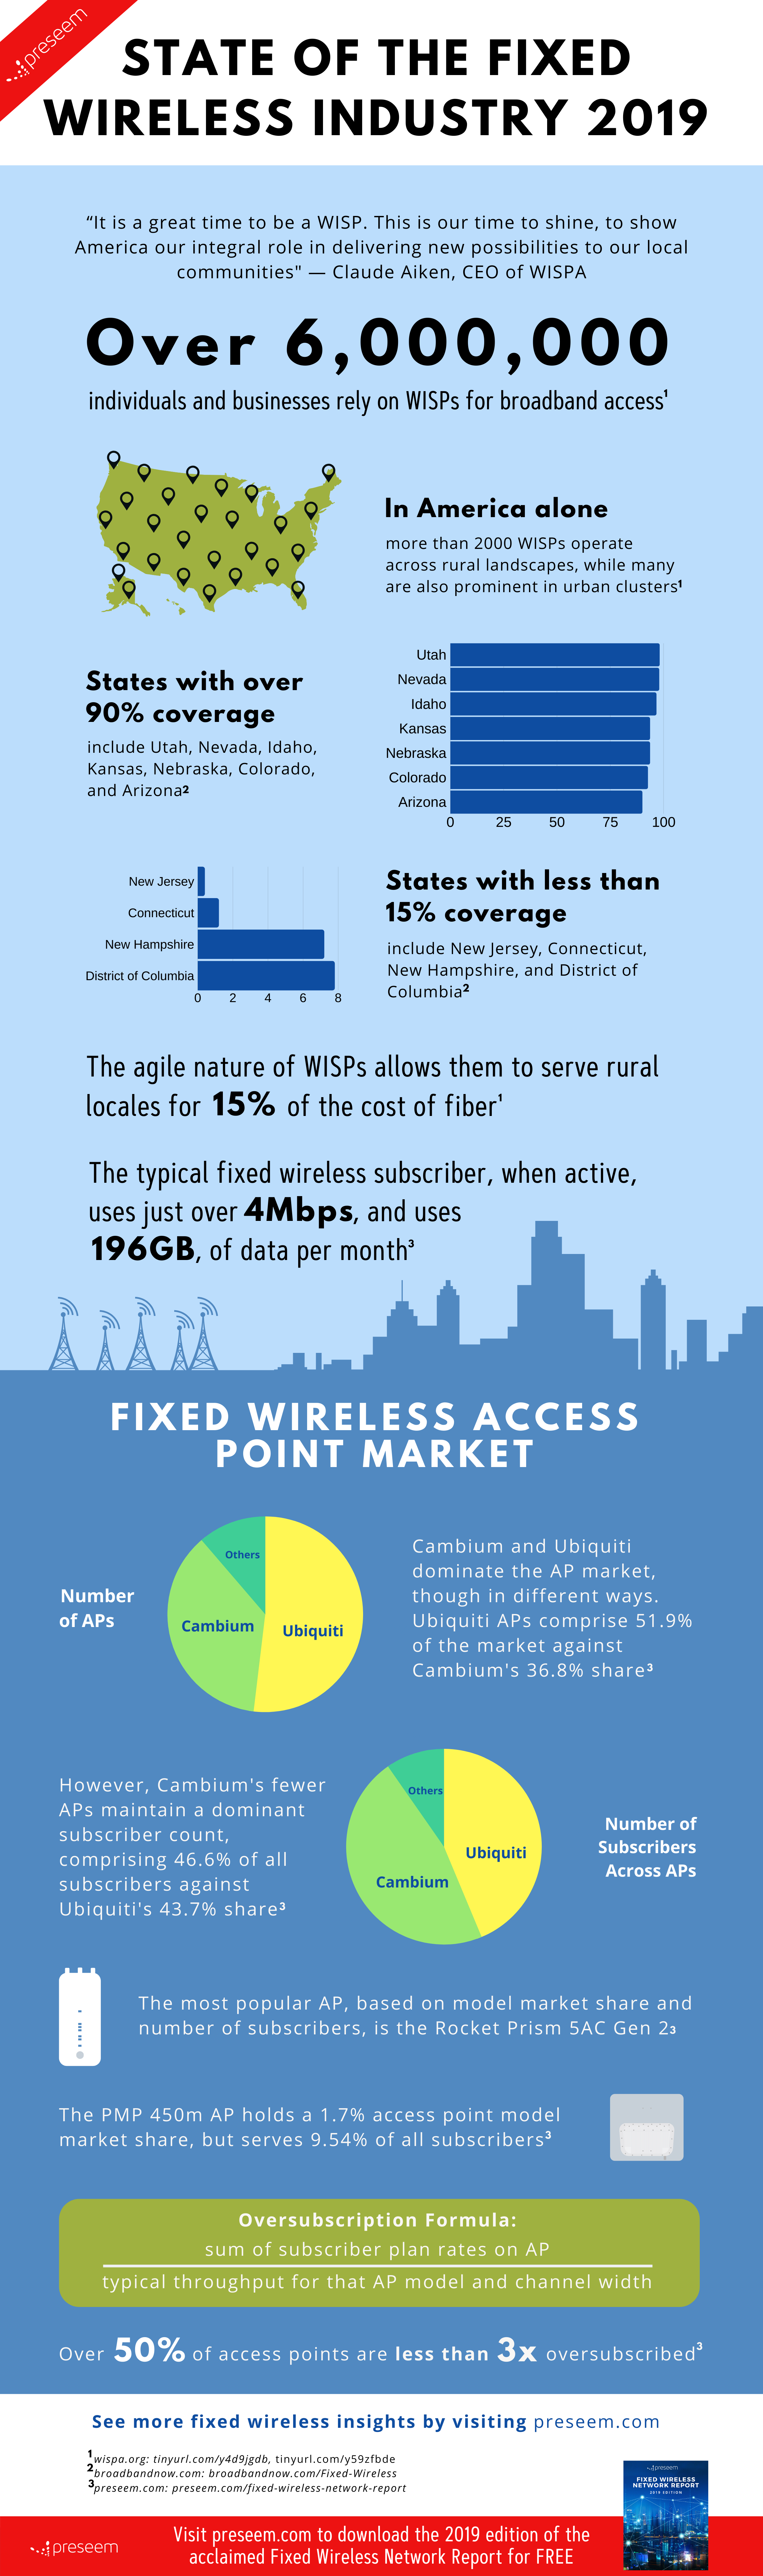 Fixed Wireless Industry Overview 2019 Infographic